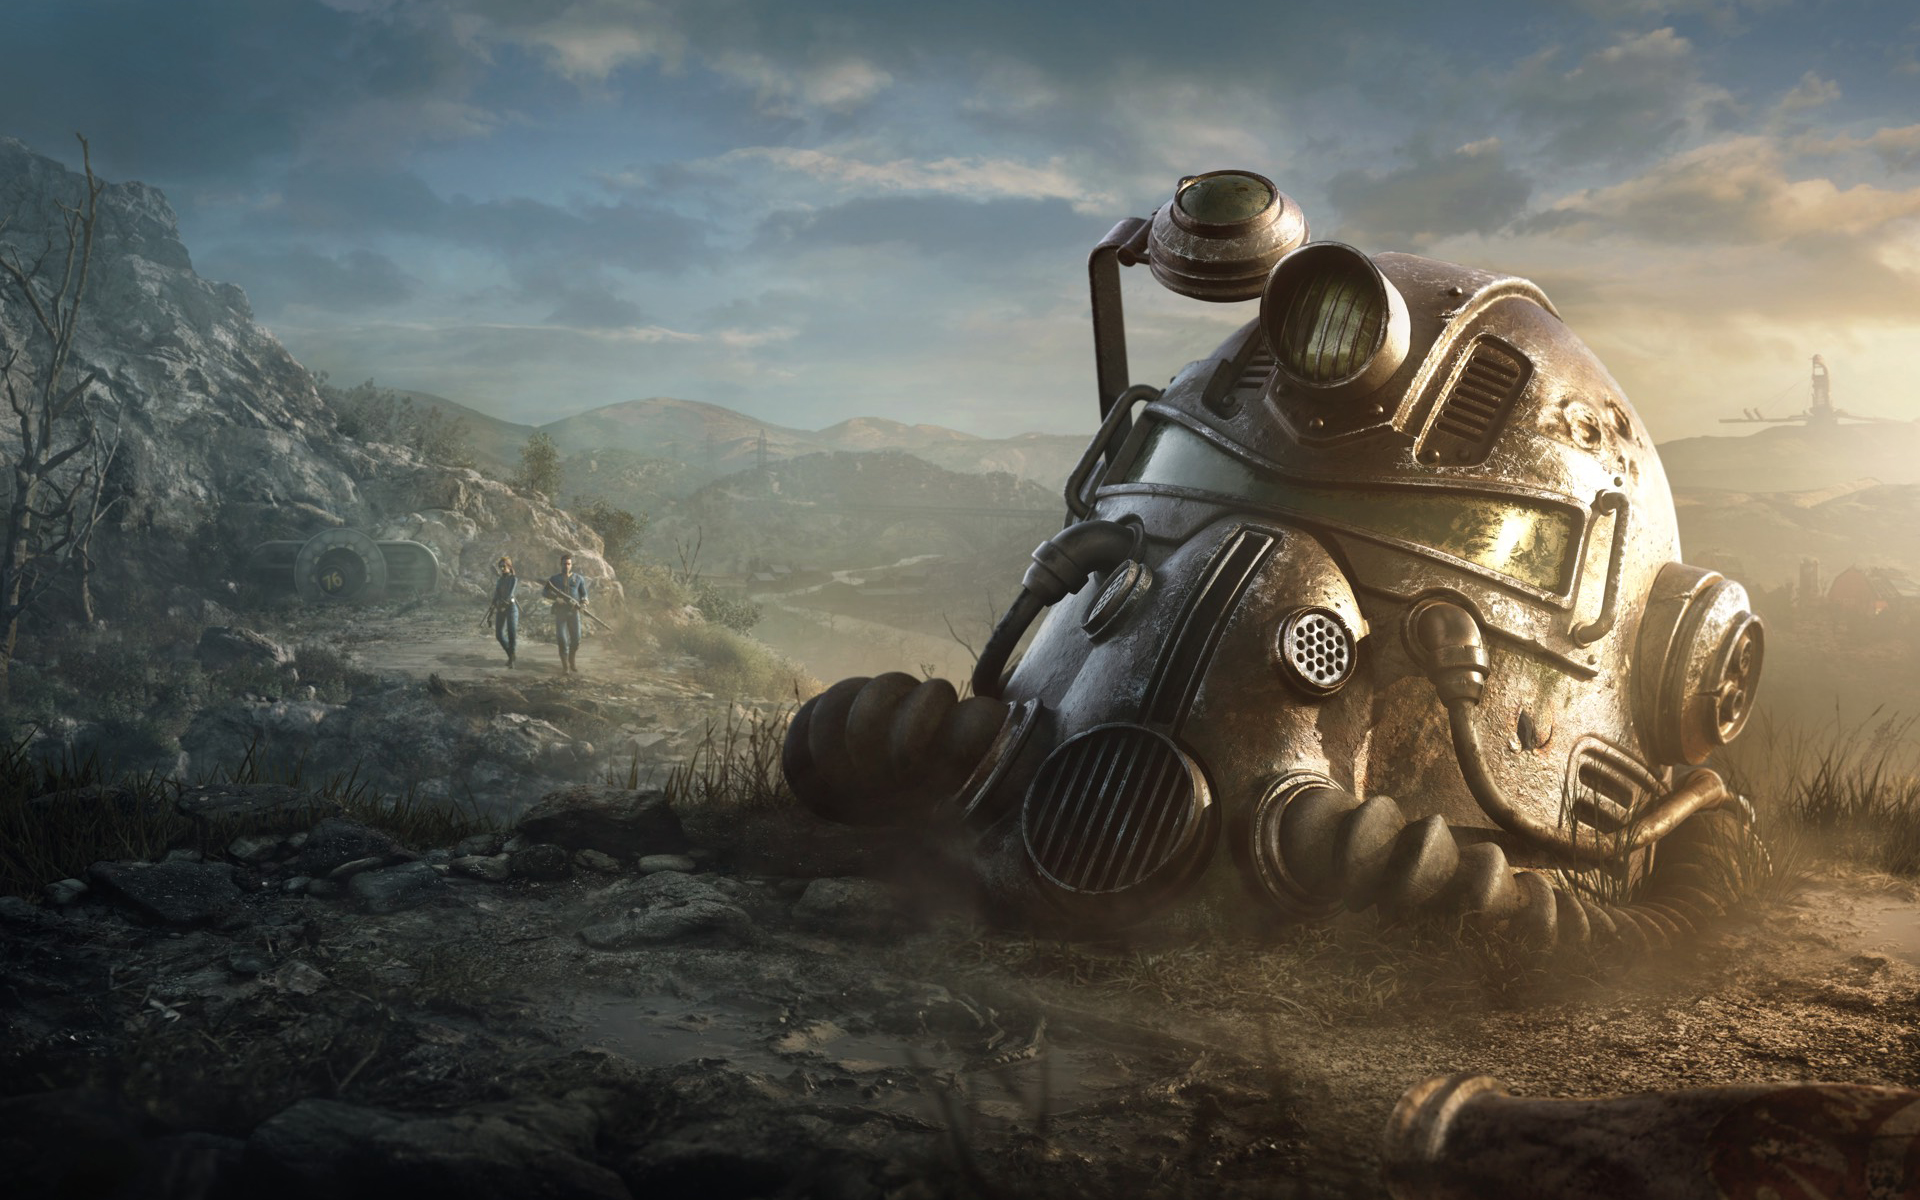 Titanfall Wallpaper Hd Fallout 76 Wallpapers Hd Wallpapers Id 24450